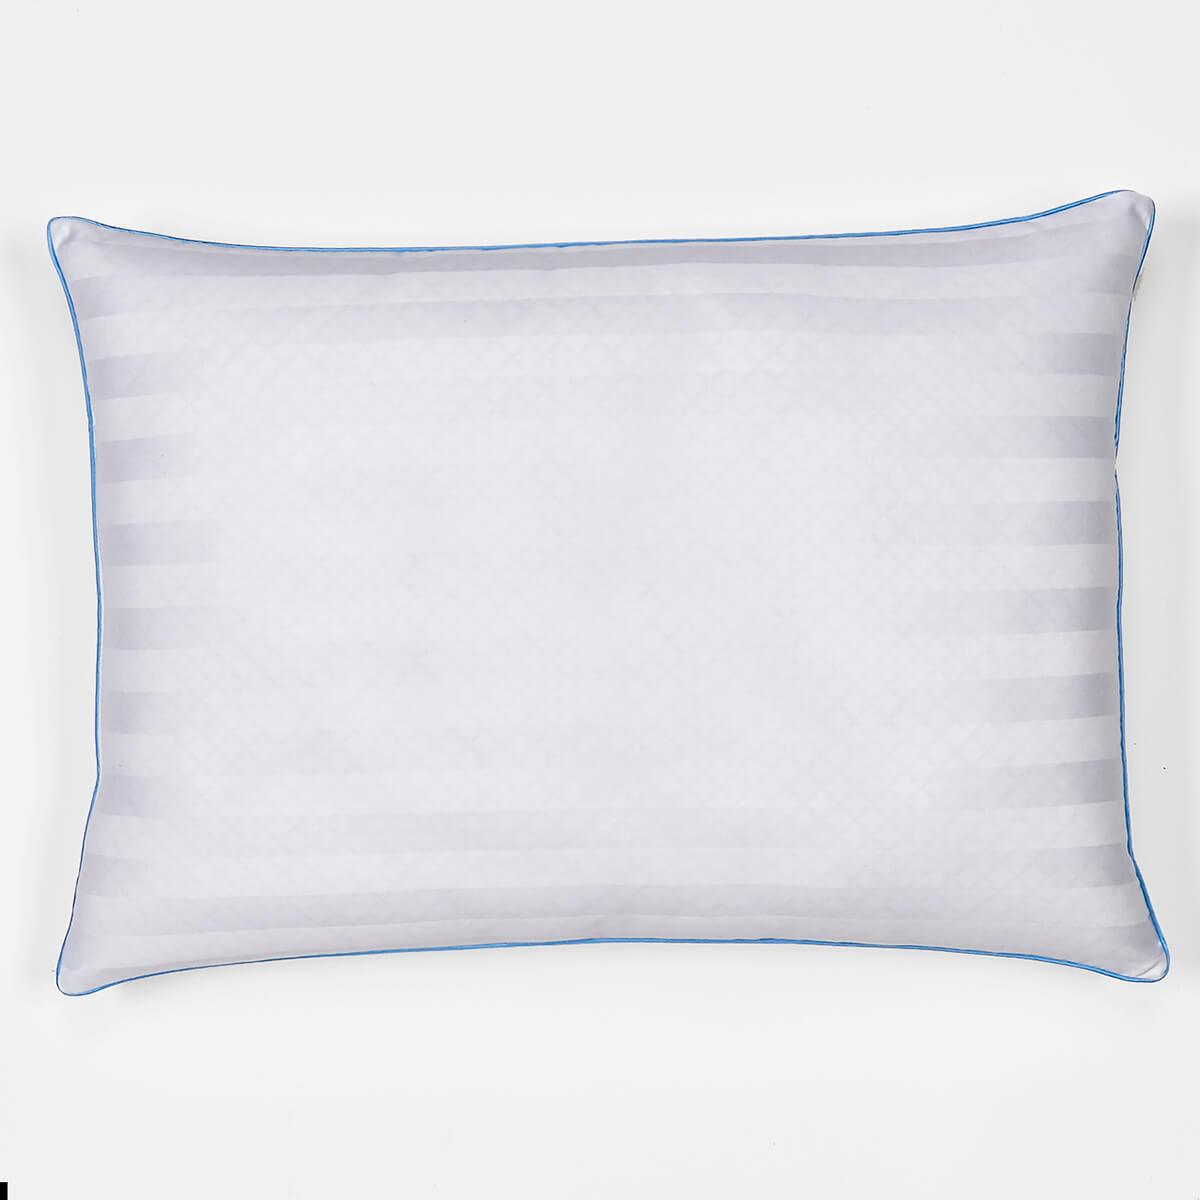 Serta 5 Degree Chill Luxe Cooling Pillow - pillow without packaging